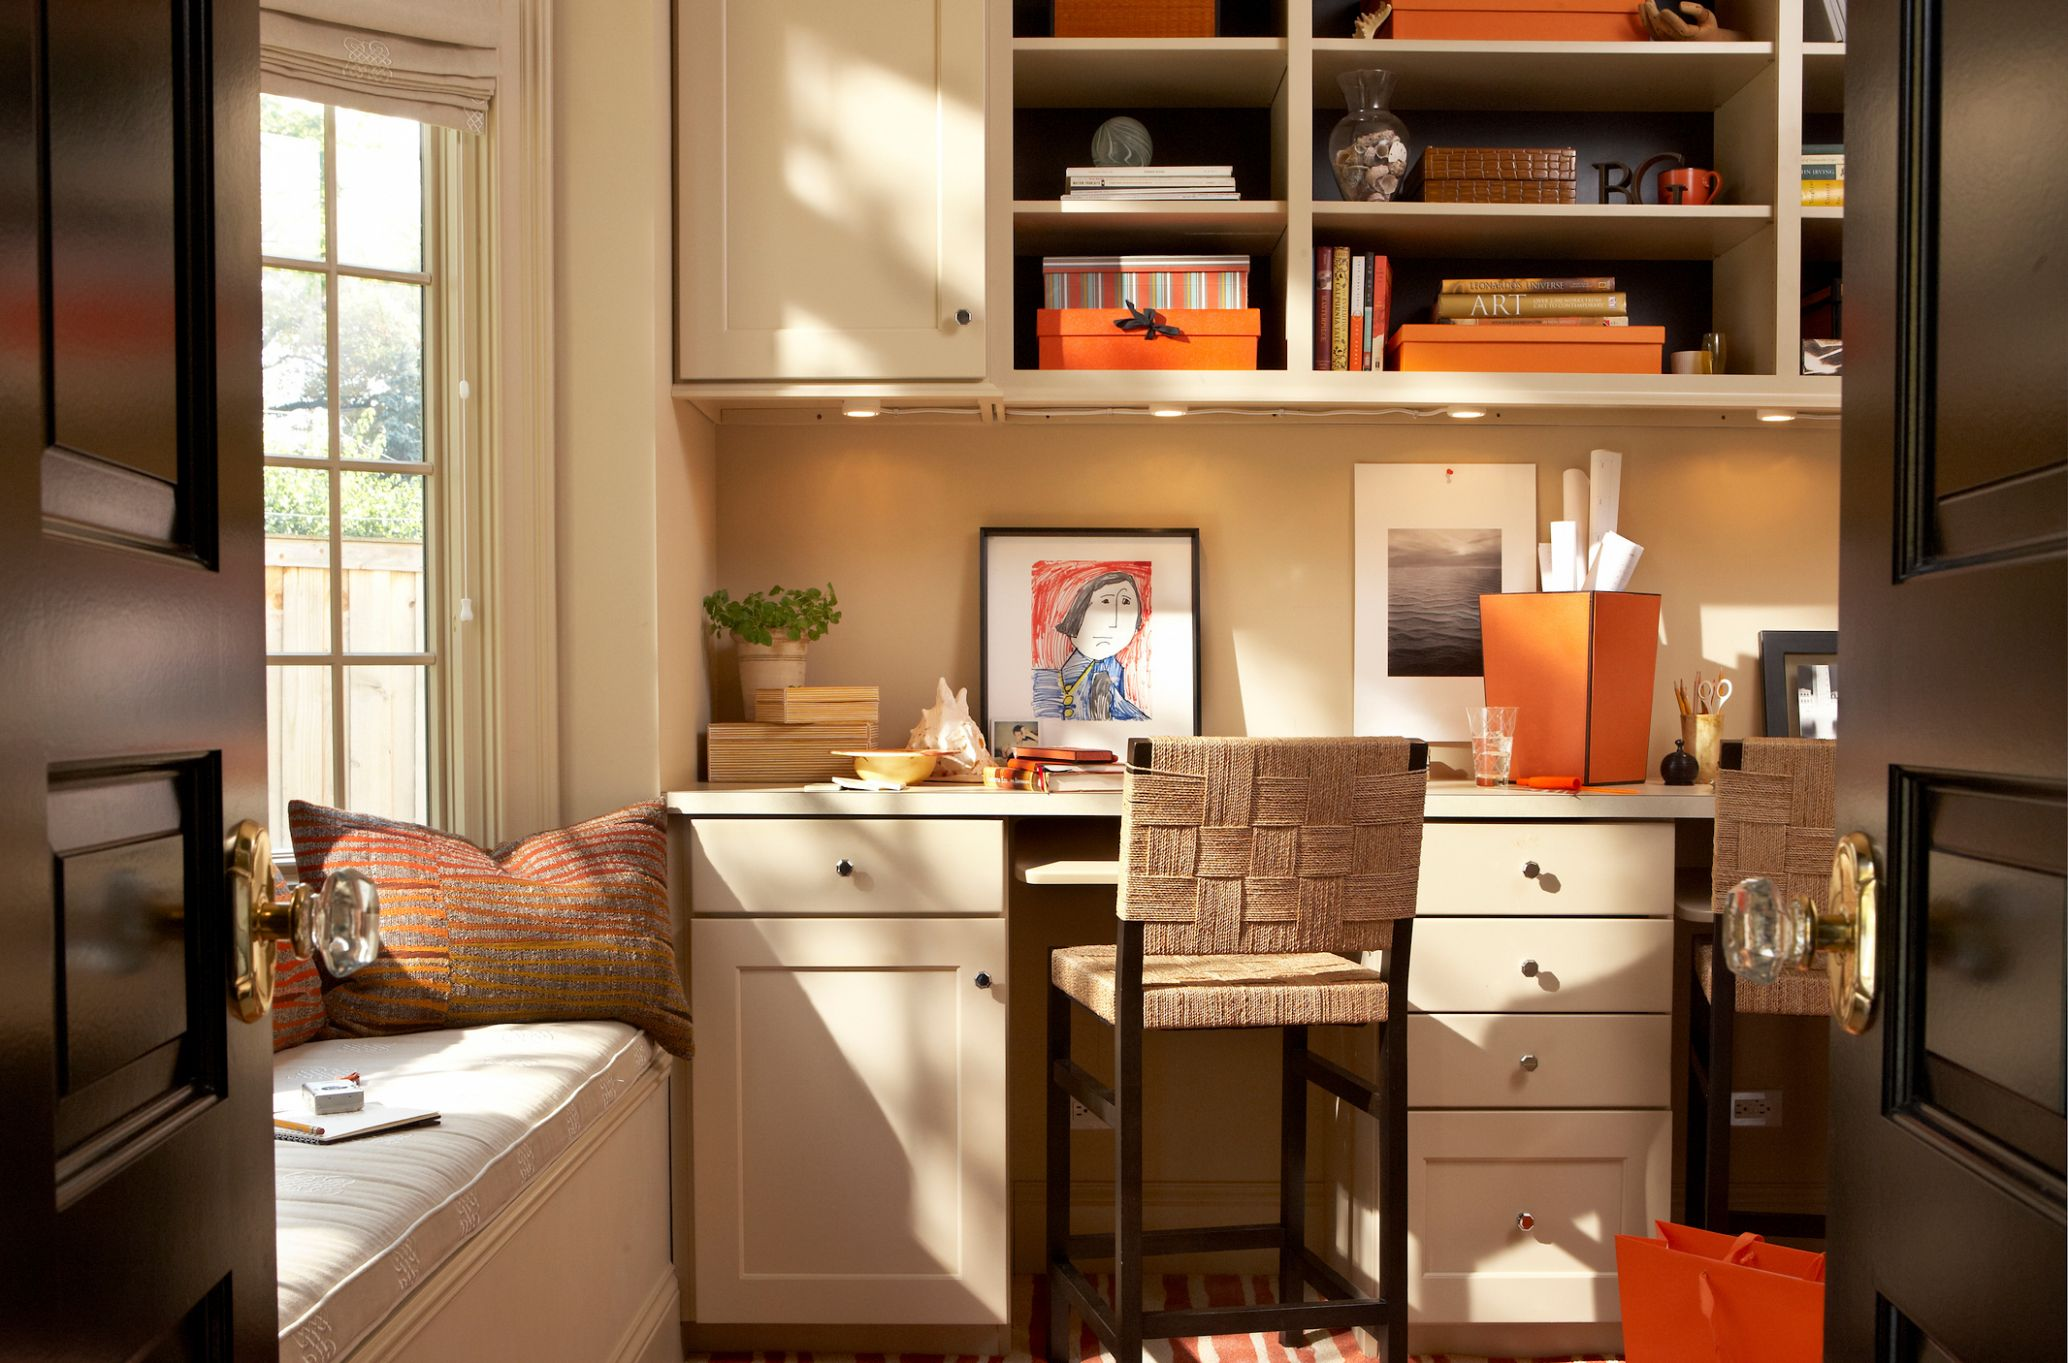 10 Modern and Chic Ideas for Your Home Office - Freshome